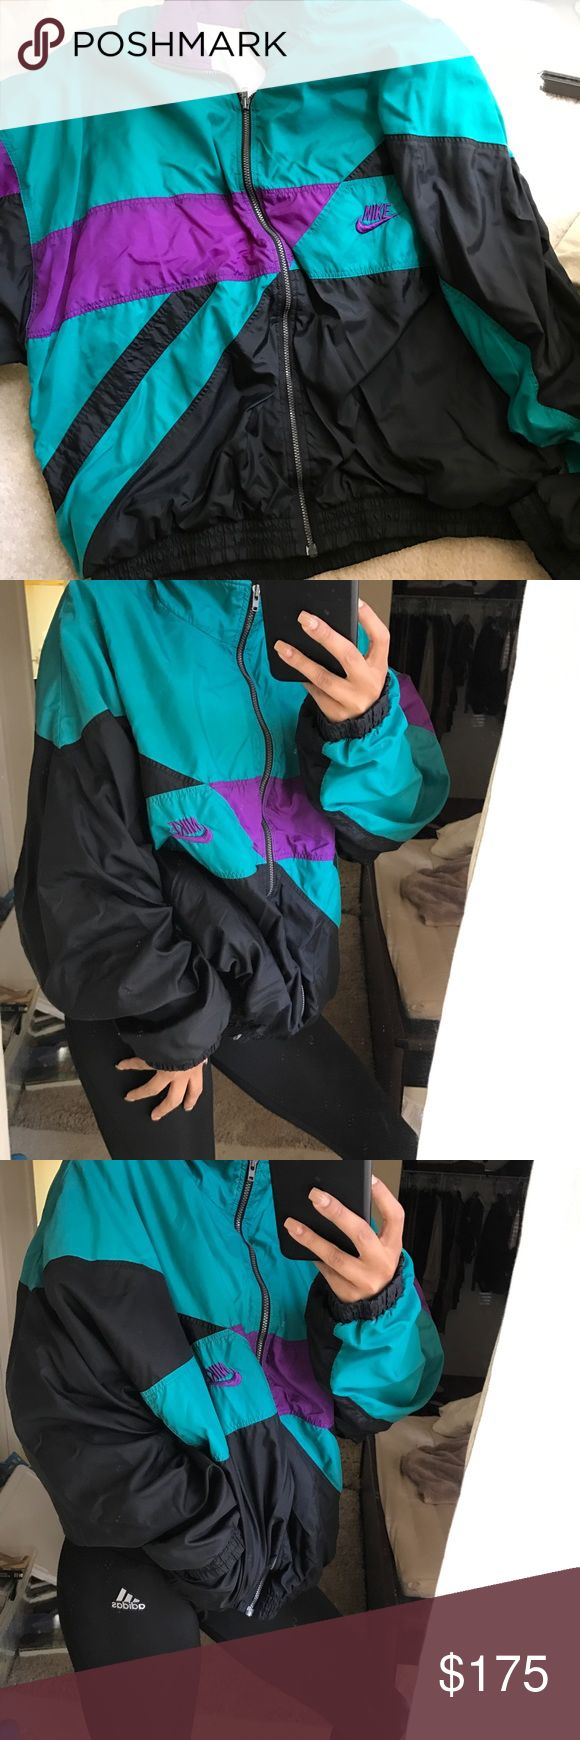 Retro Nike Windbreaker 💨 One of kind. FIRM PRICE. Perfect condition. No trading at all. Will ship same day if before 2pm or next day. ❤️All items sold here are in perfect condition unless stated otherwise. Nike Jackets & Coats